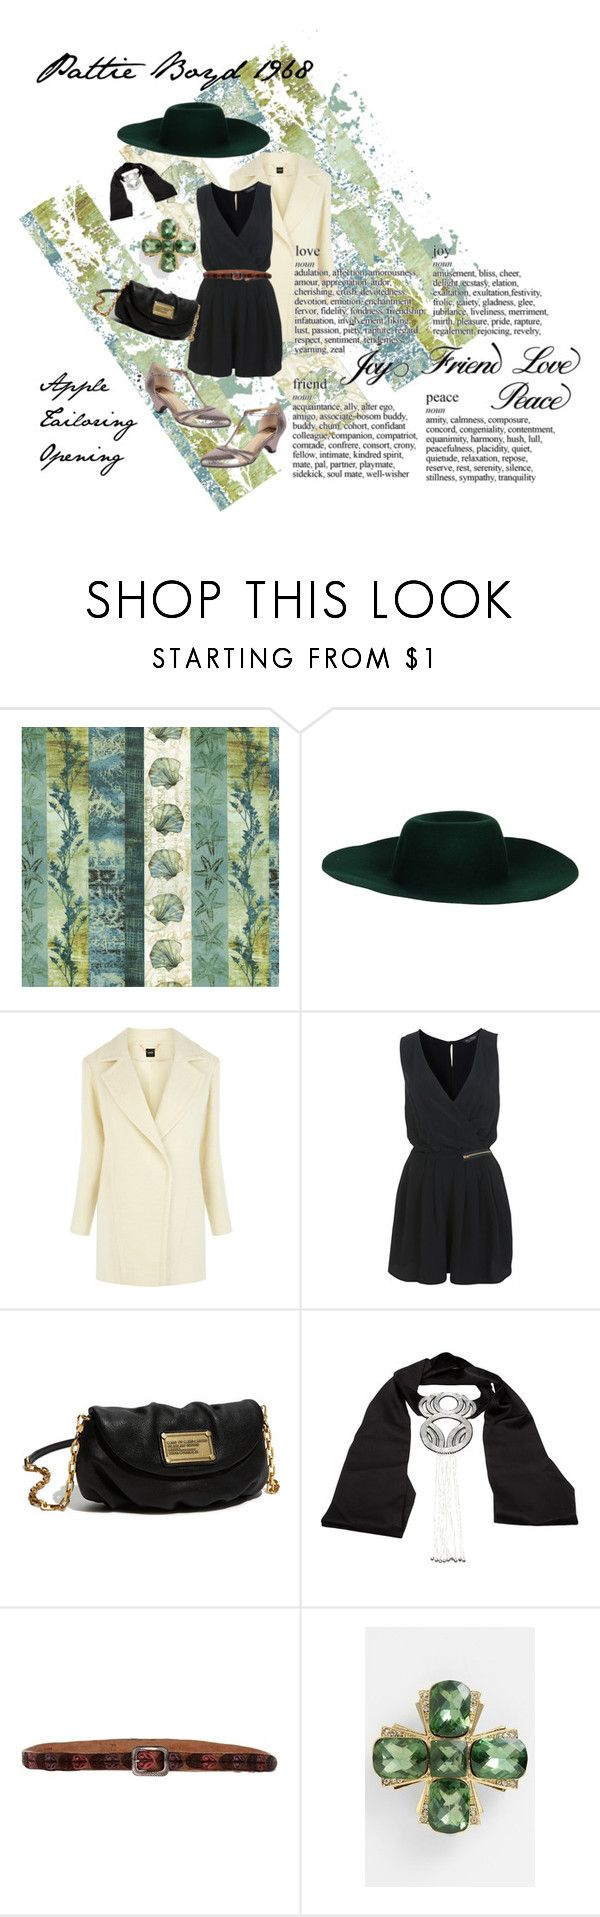 """""""Pattie Boyd at Apple Tailoring Opening"""" by astridma ❤ liked on Polyvore featuring Oasis, Miss Selfridge, Marc by Marc Jacobs, JULIA CLANCEY, D'Amico and Anne Klein"""